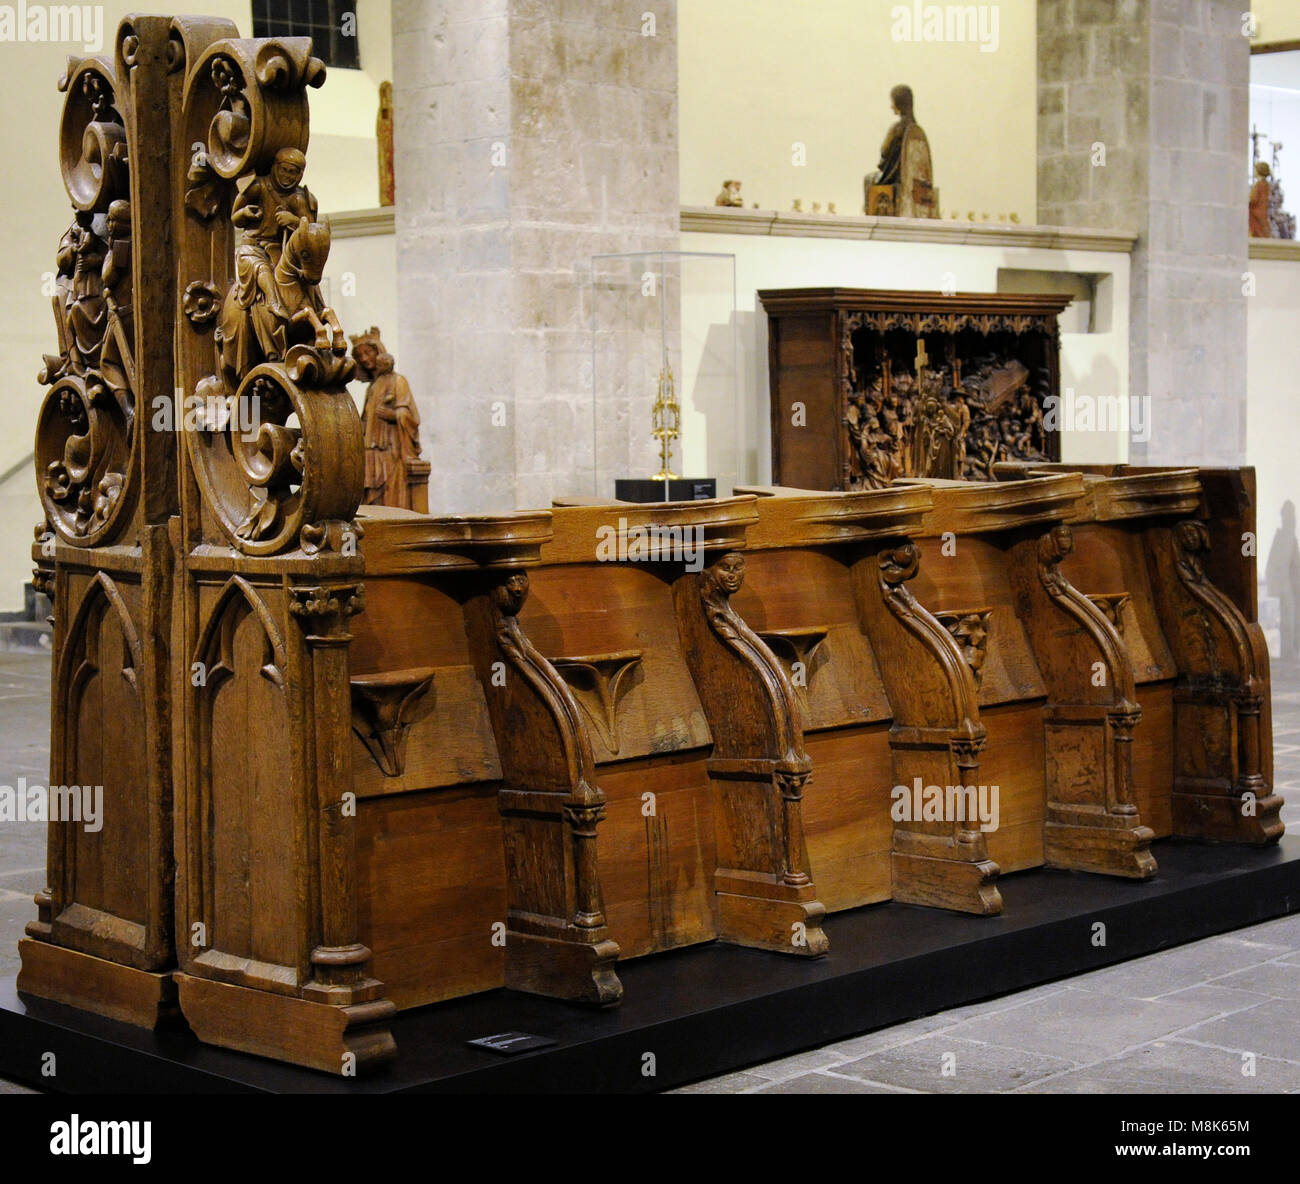 Choir Stalls of the former Collegiate Church of St. George from Wassenberg on the Lower Rhine, Germany, c. 1298. - Stock Image